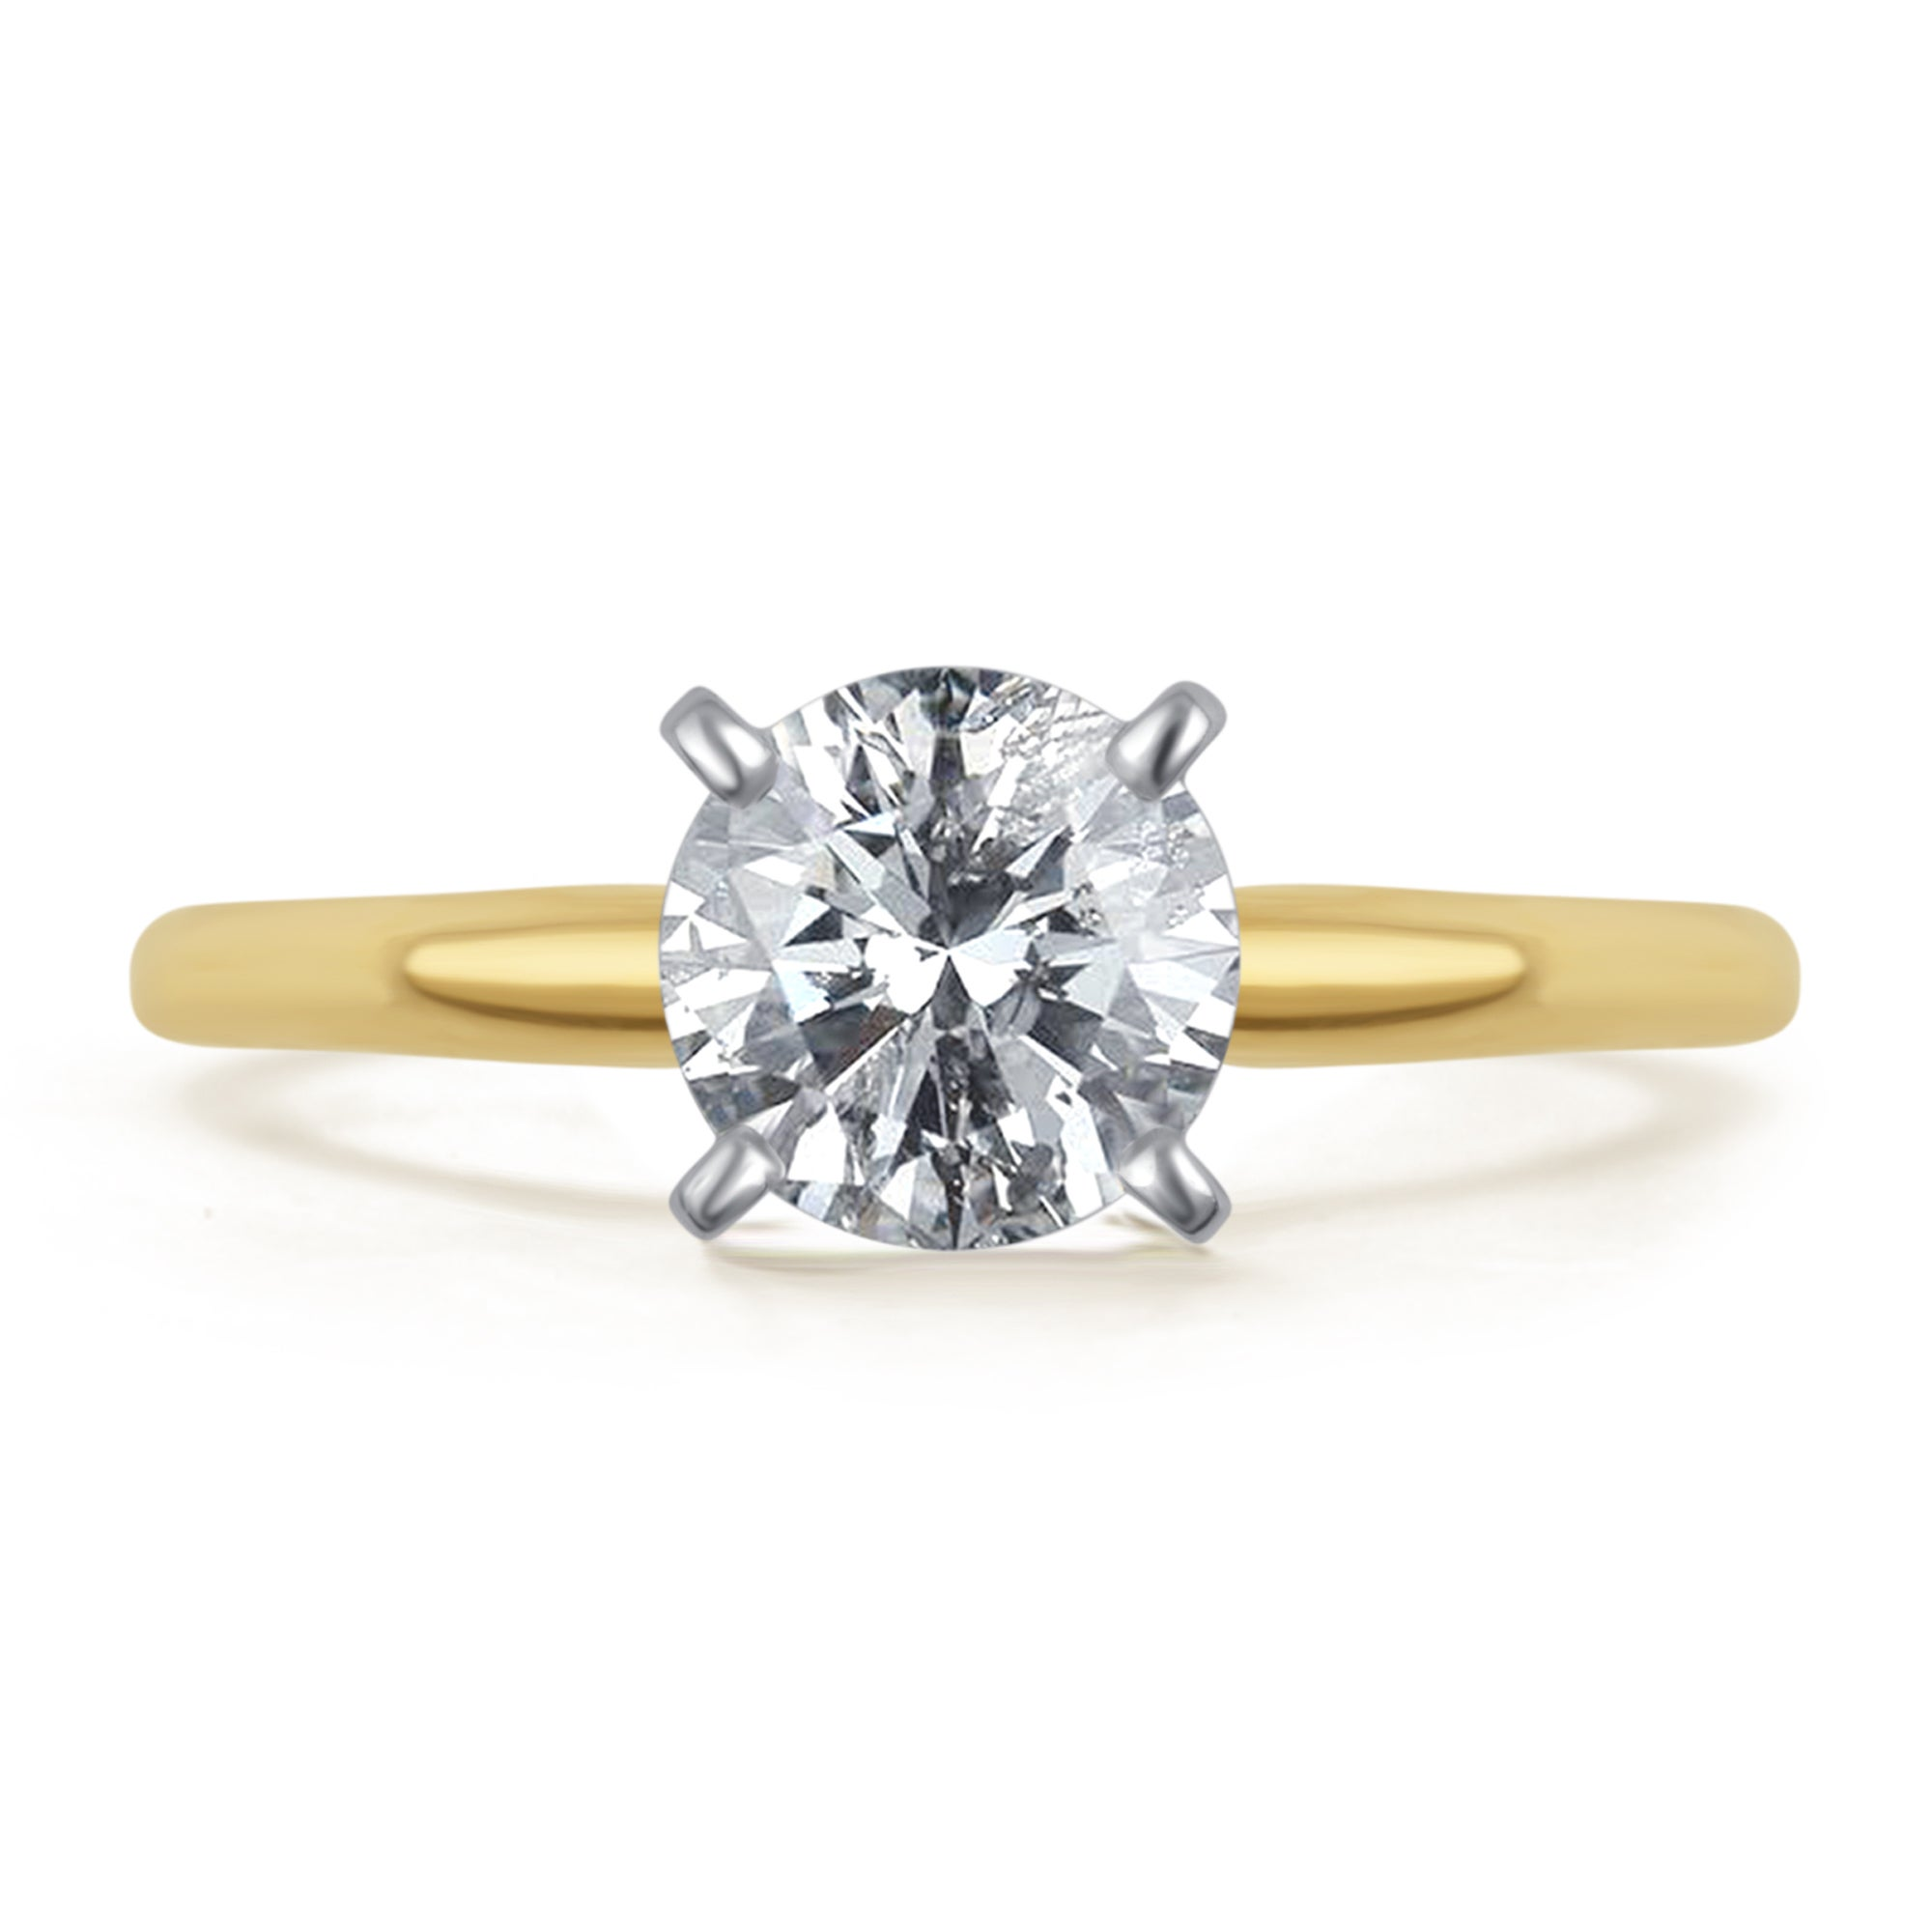 whitakers cut jewellery engagement marquise magnifying glass rings ring solitaire jewellers diamond